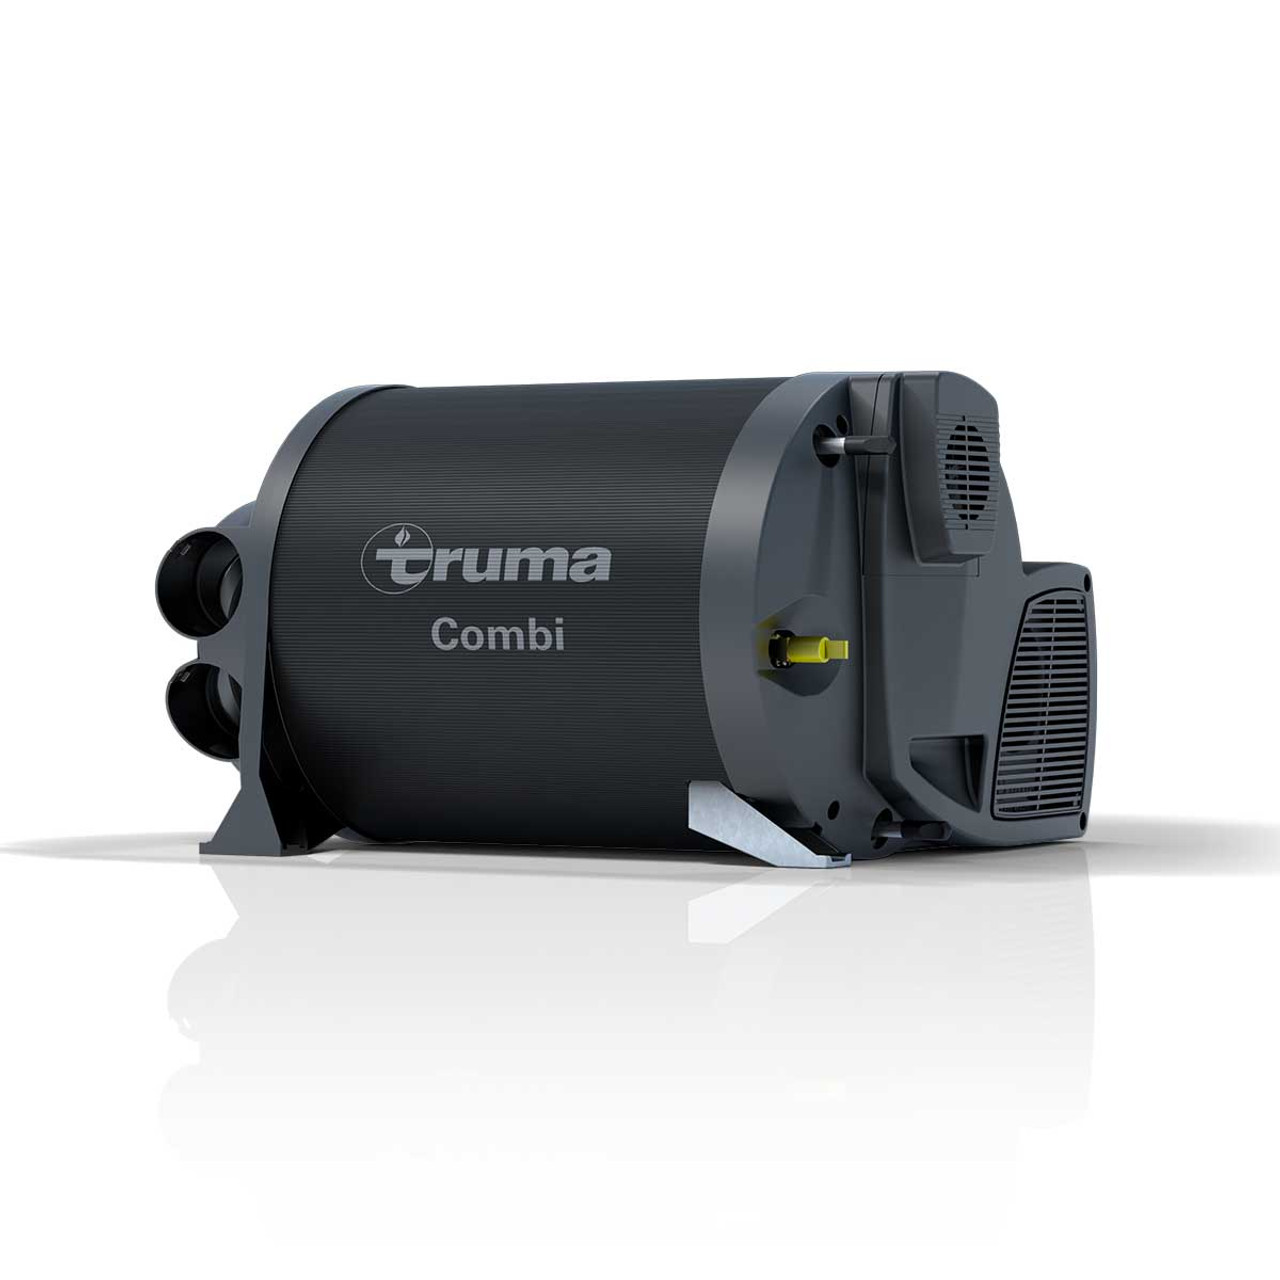 Main image of the Truma 4 / 4E Comib Boiler and space heater great for caravan, campervan and motorhome